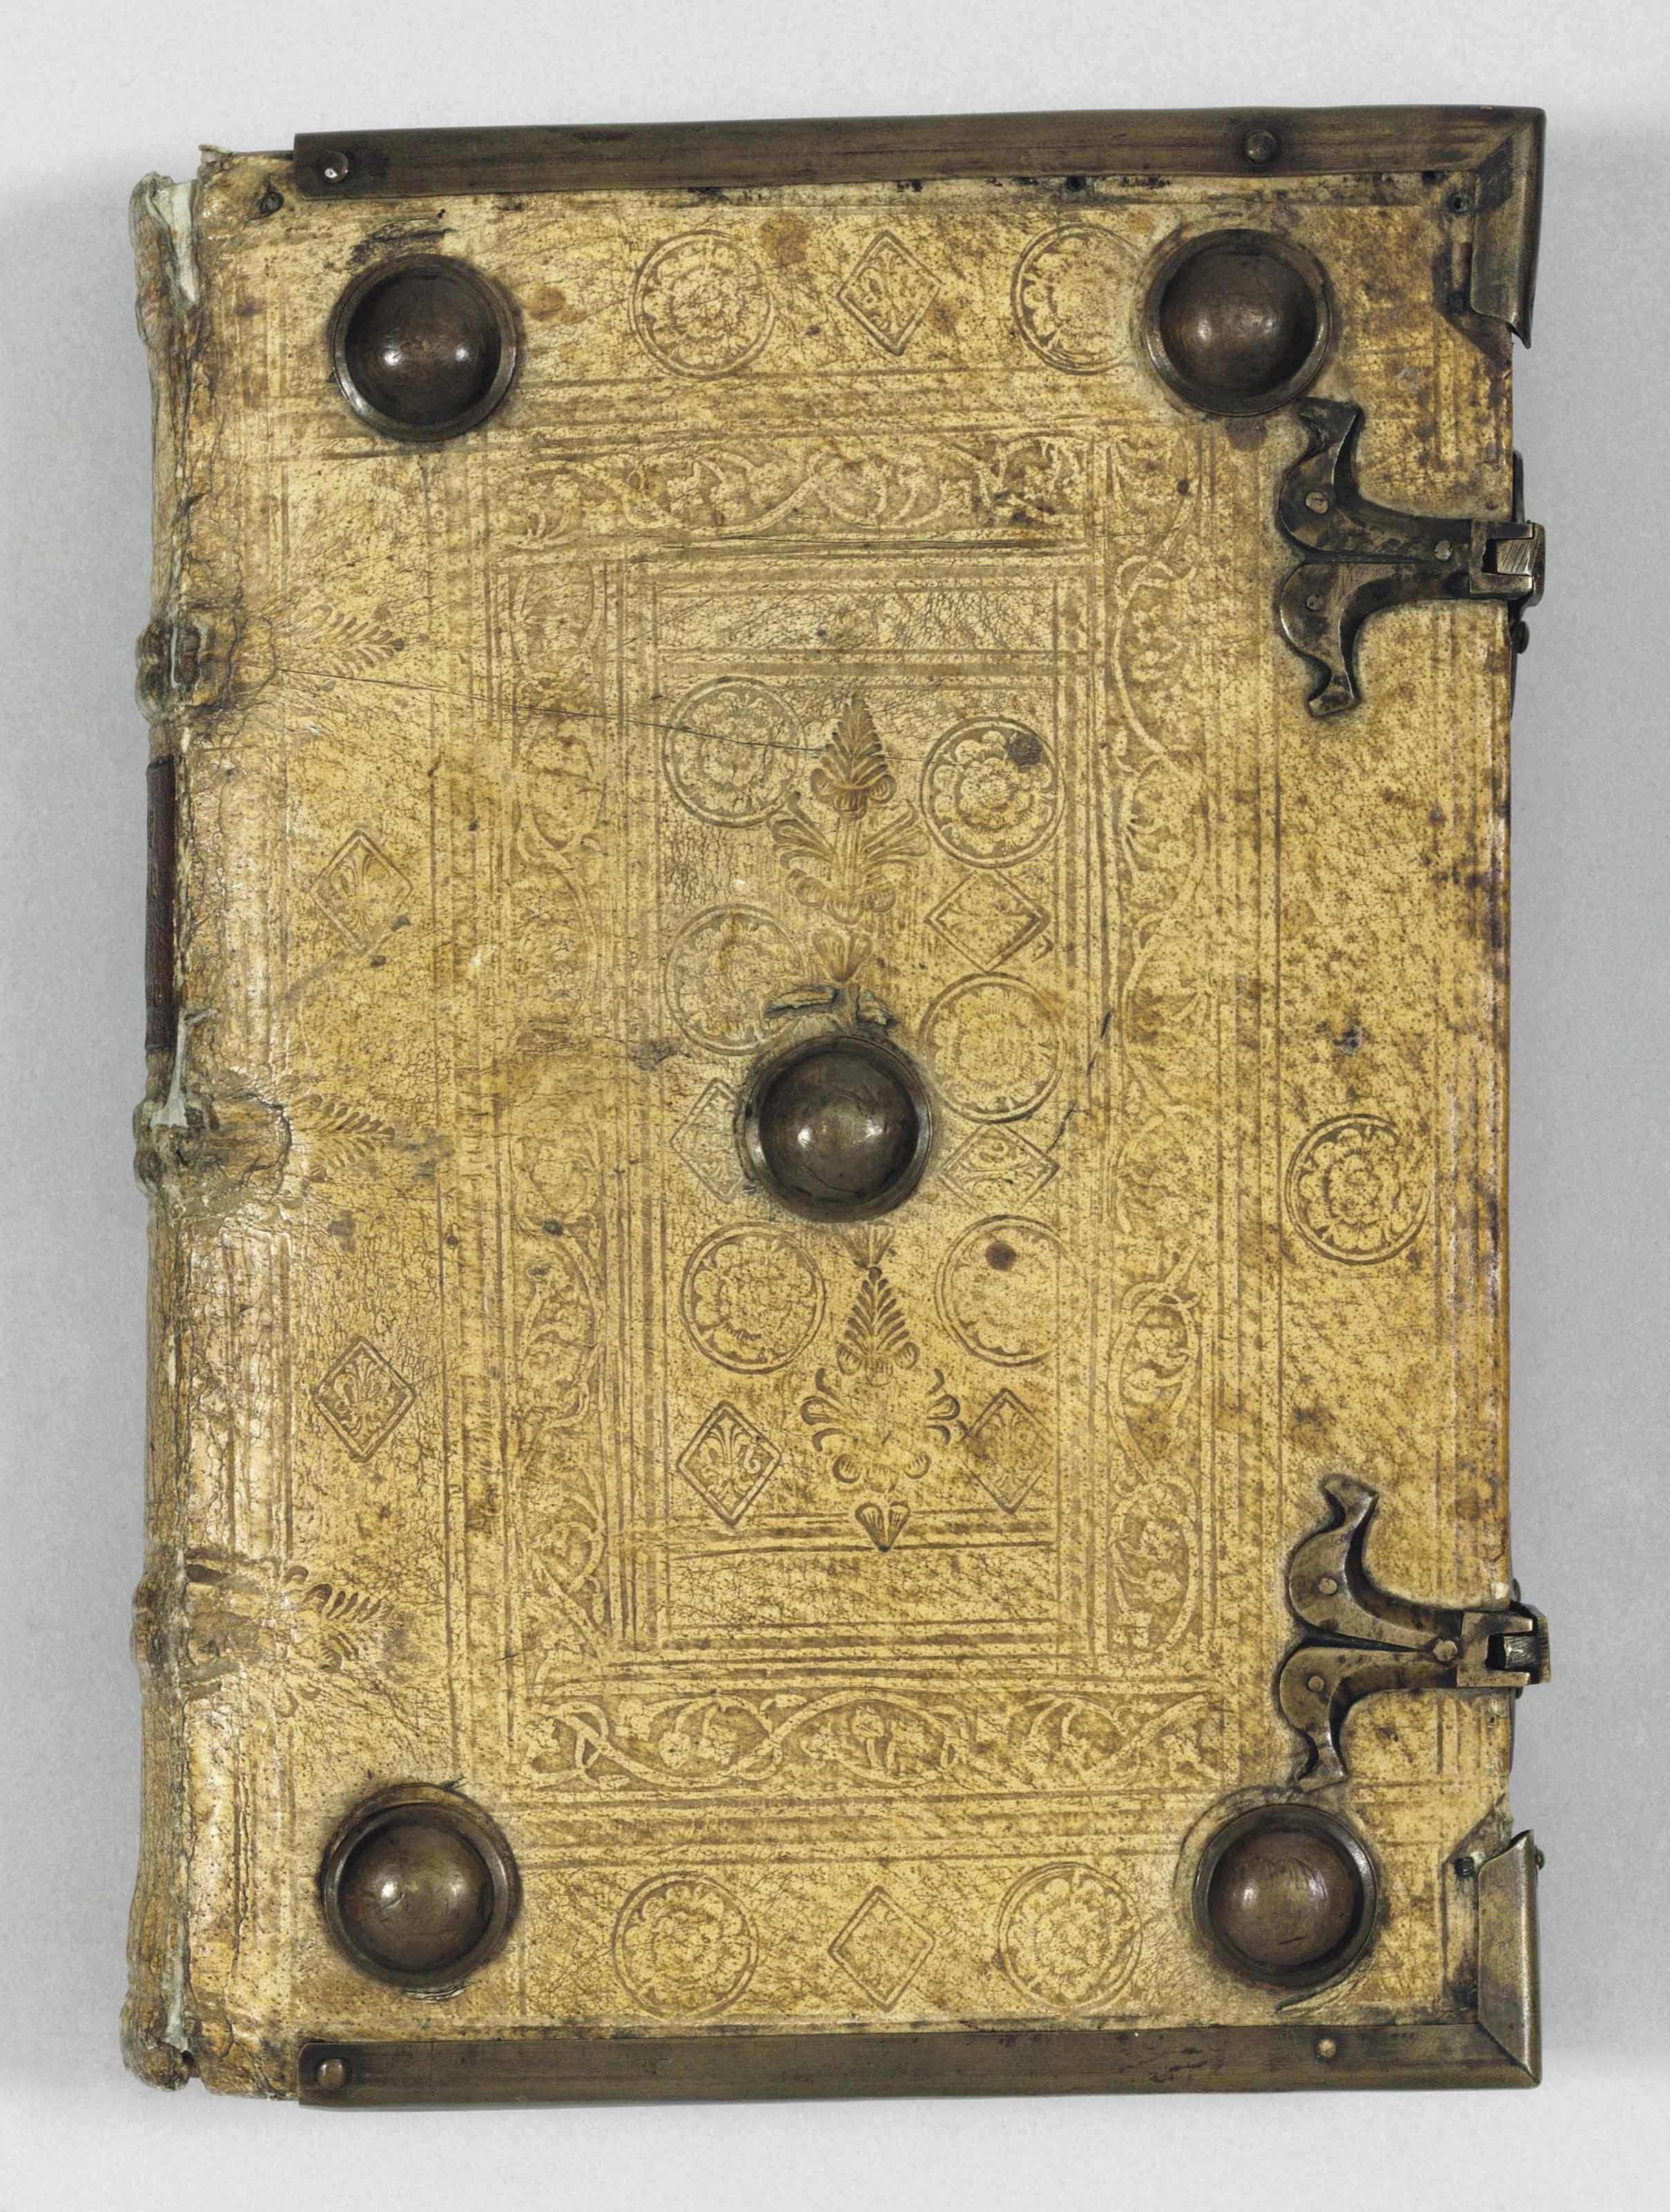 NOTED LECTIONARY, in Latin and